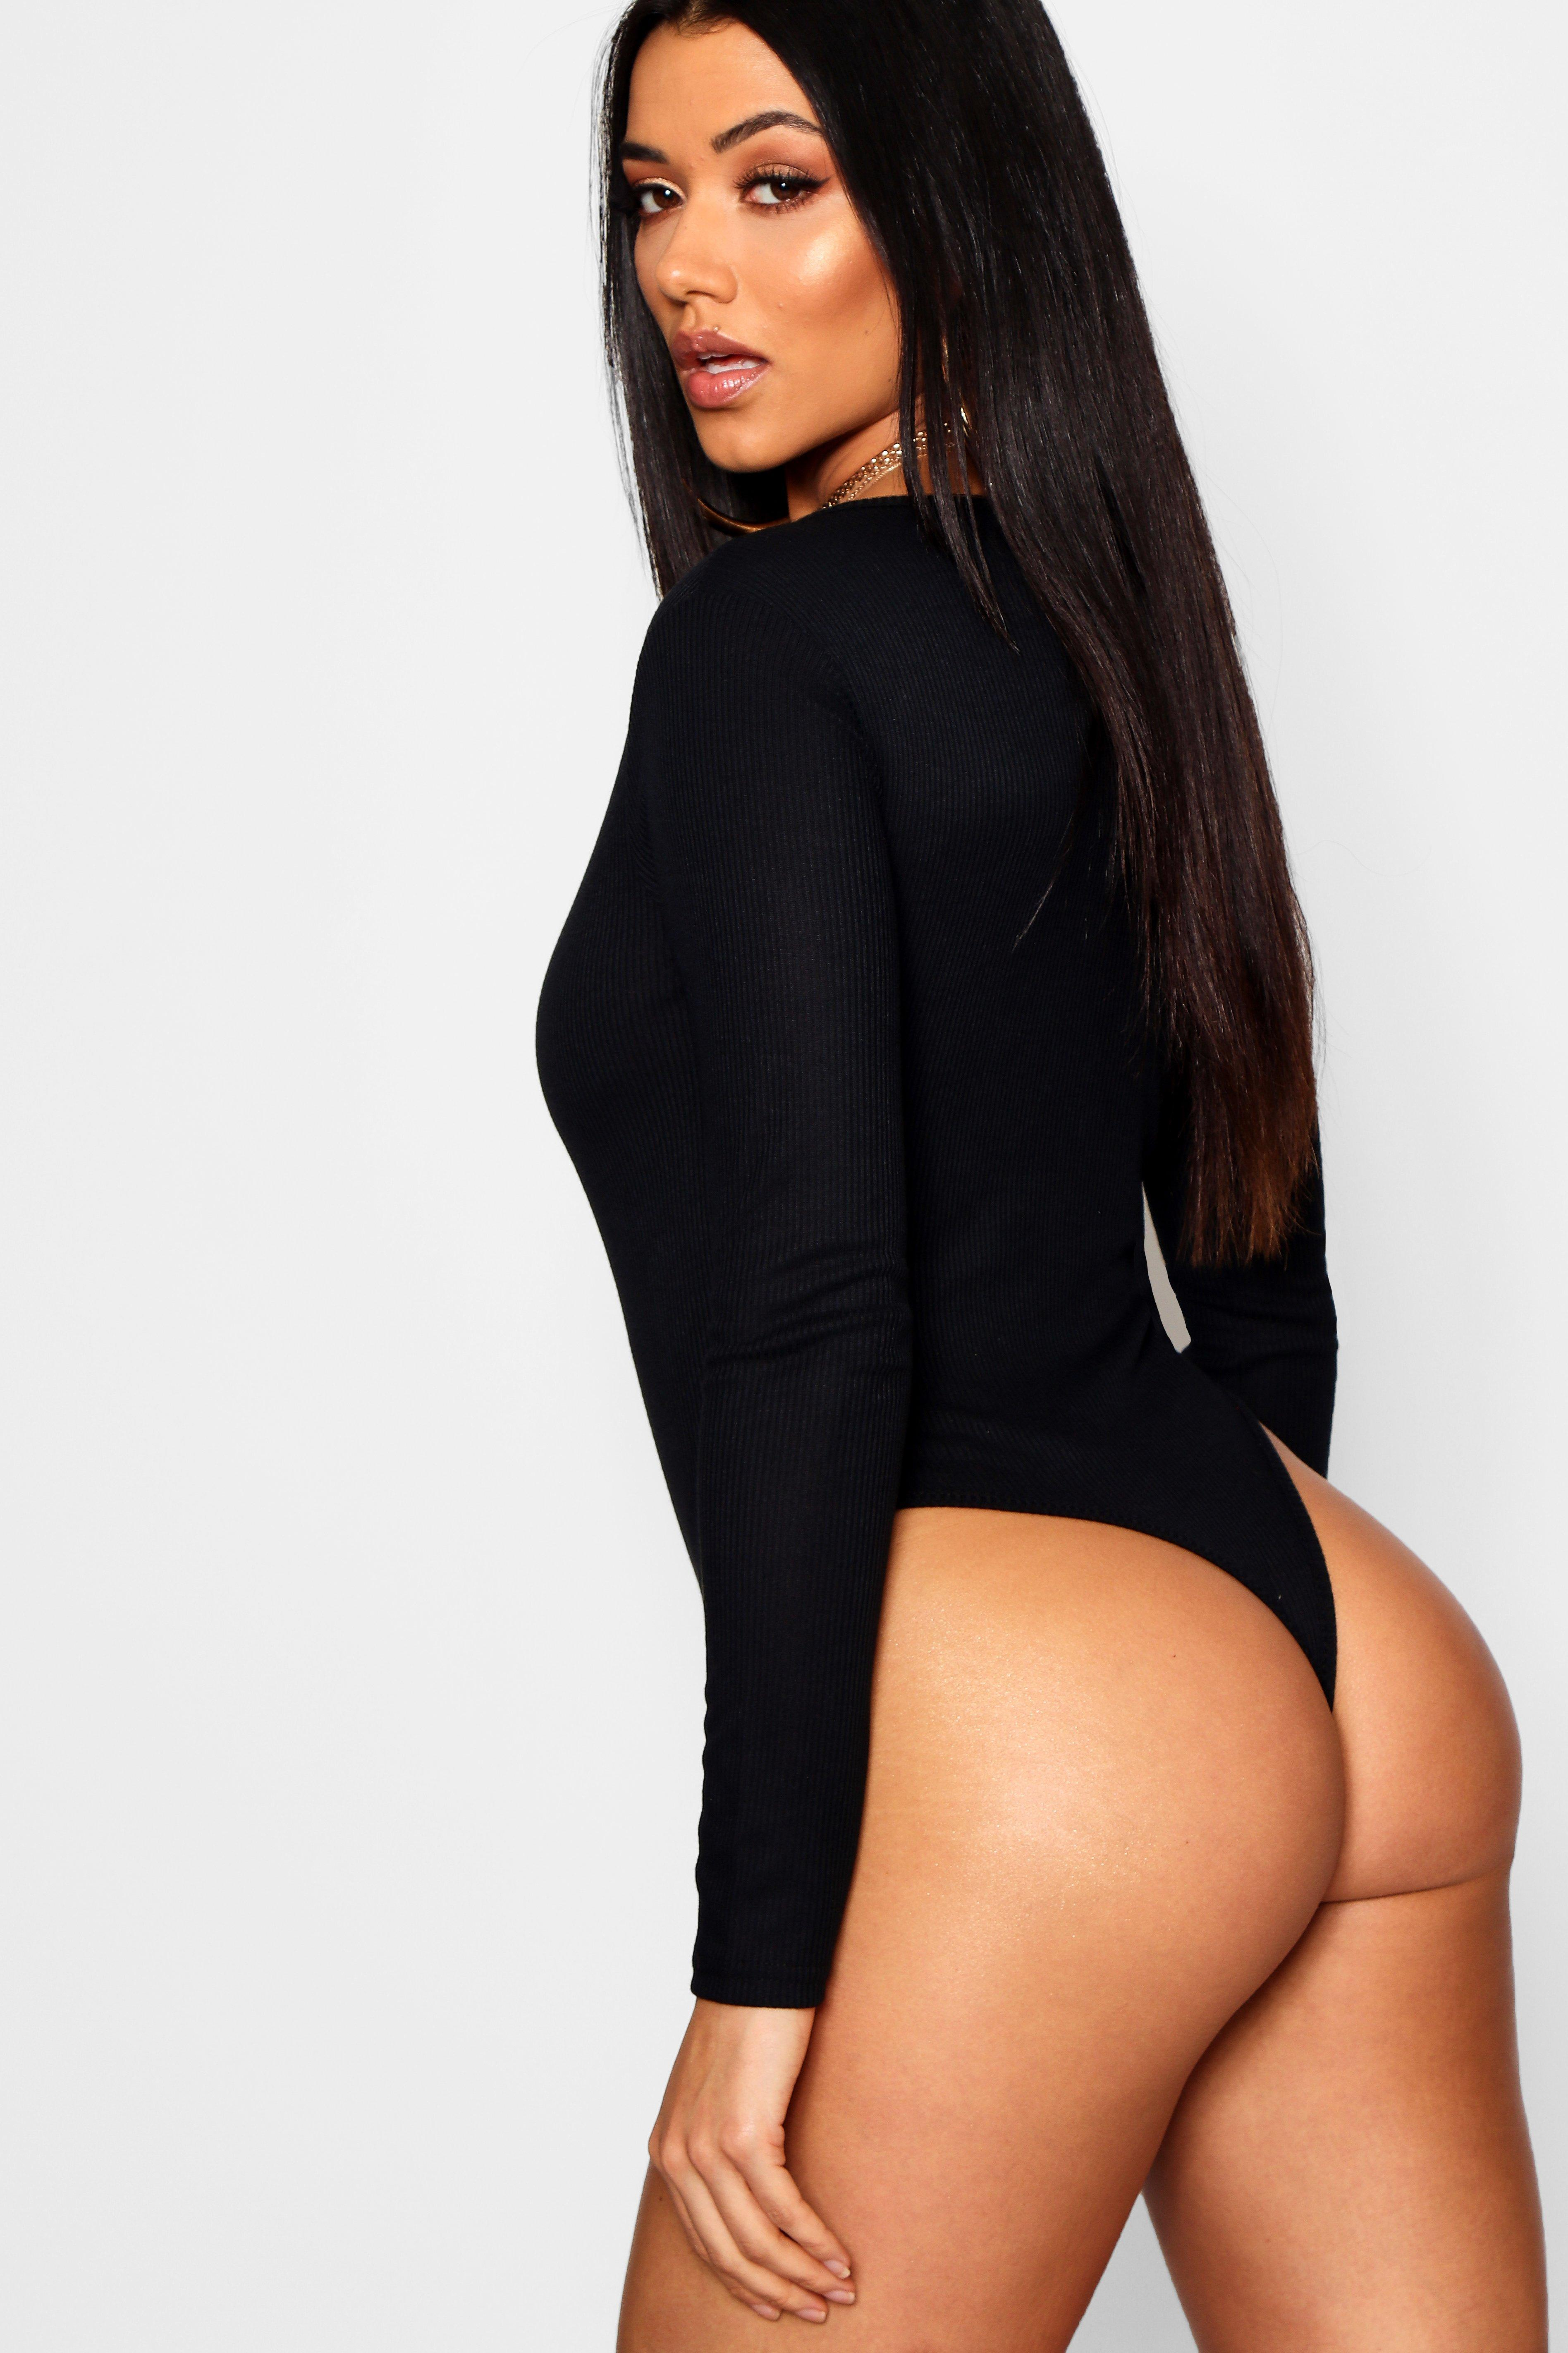 8351a41ab8 Boohoo - Black Basic V Neck Ruched Front Thong Bodysuit - Lyst. View  fullscreen